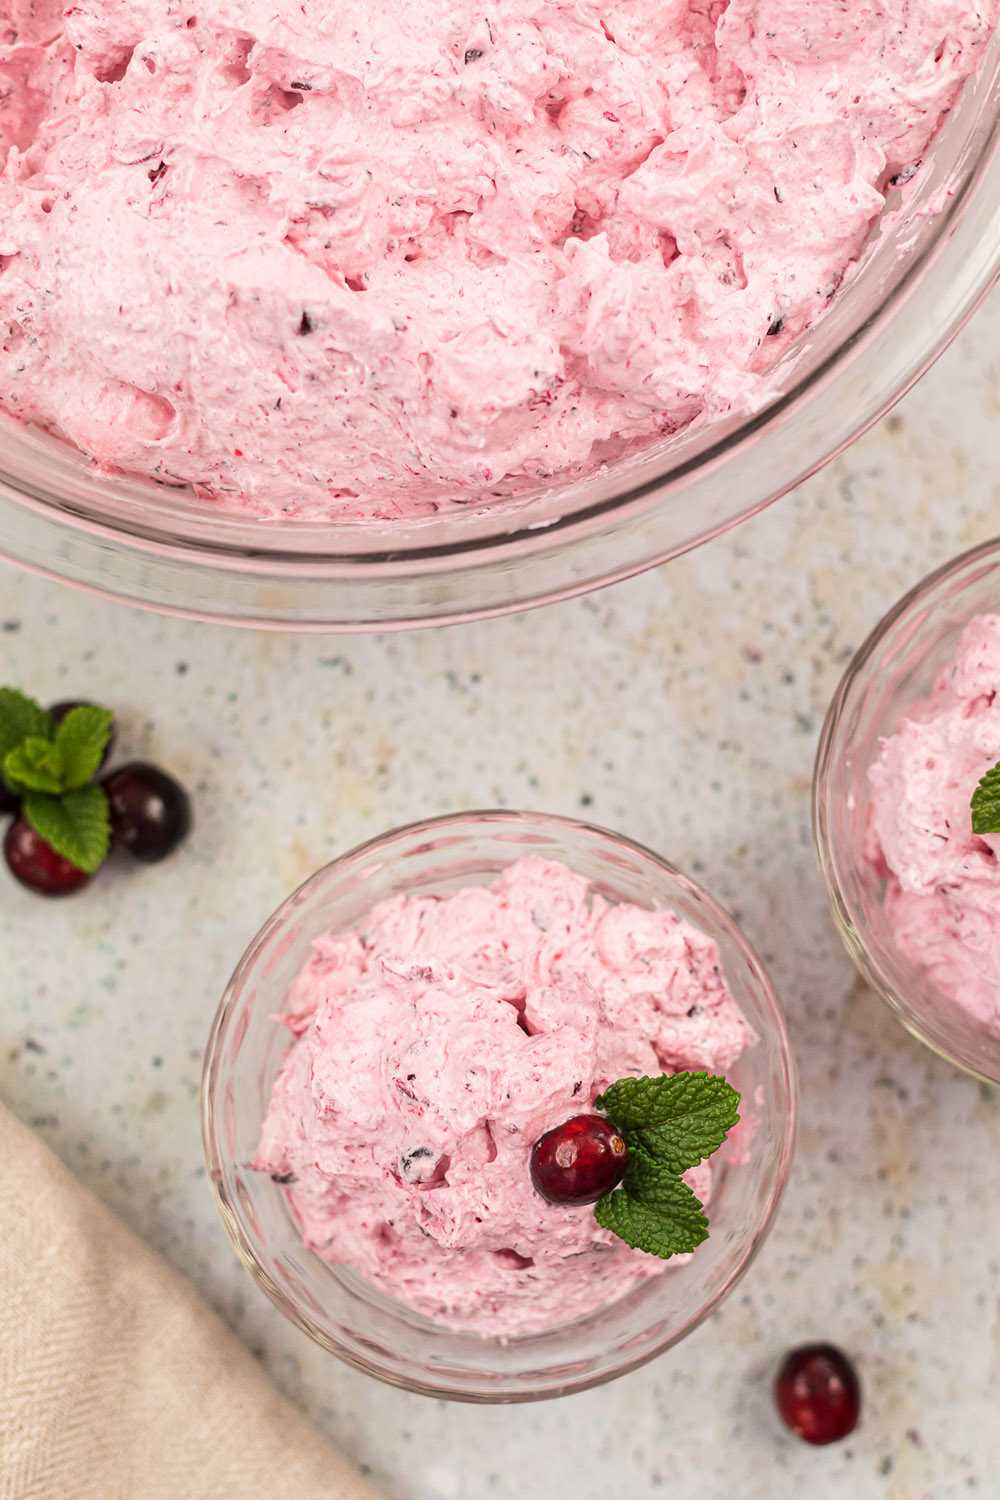 Clear bowls filled with pink whipped cranberry salad.